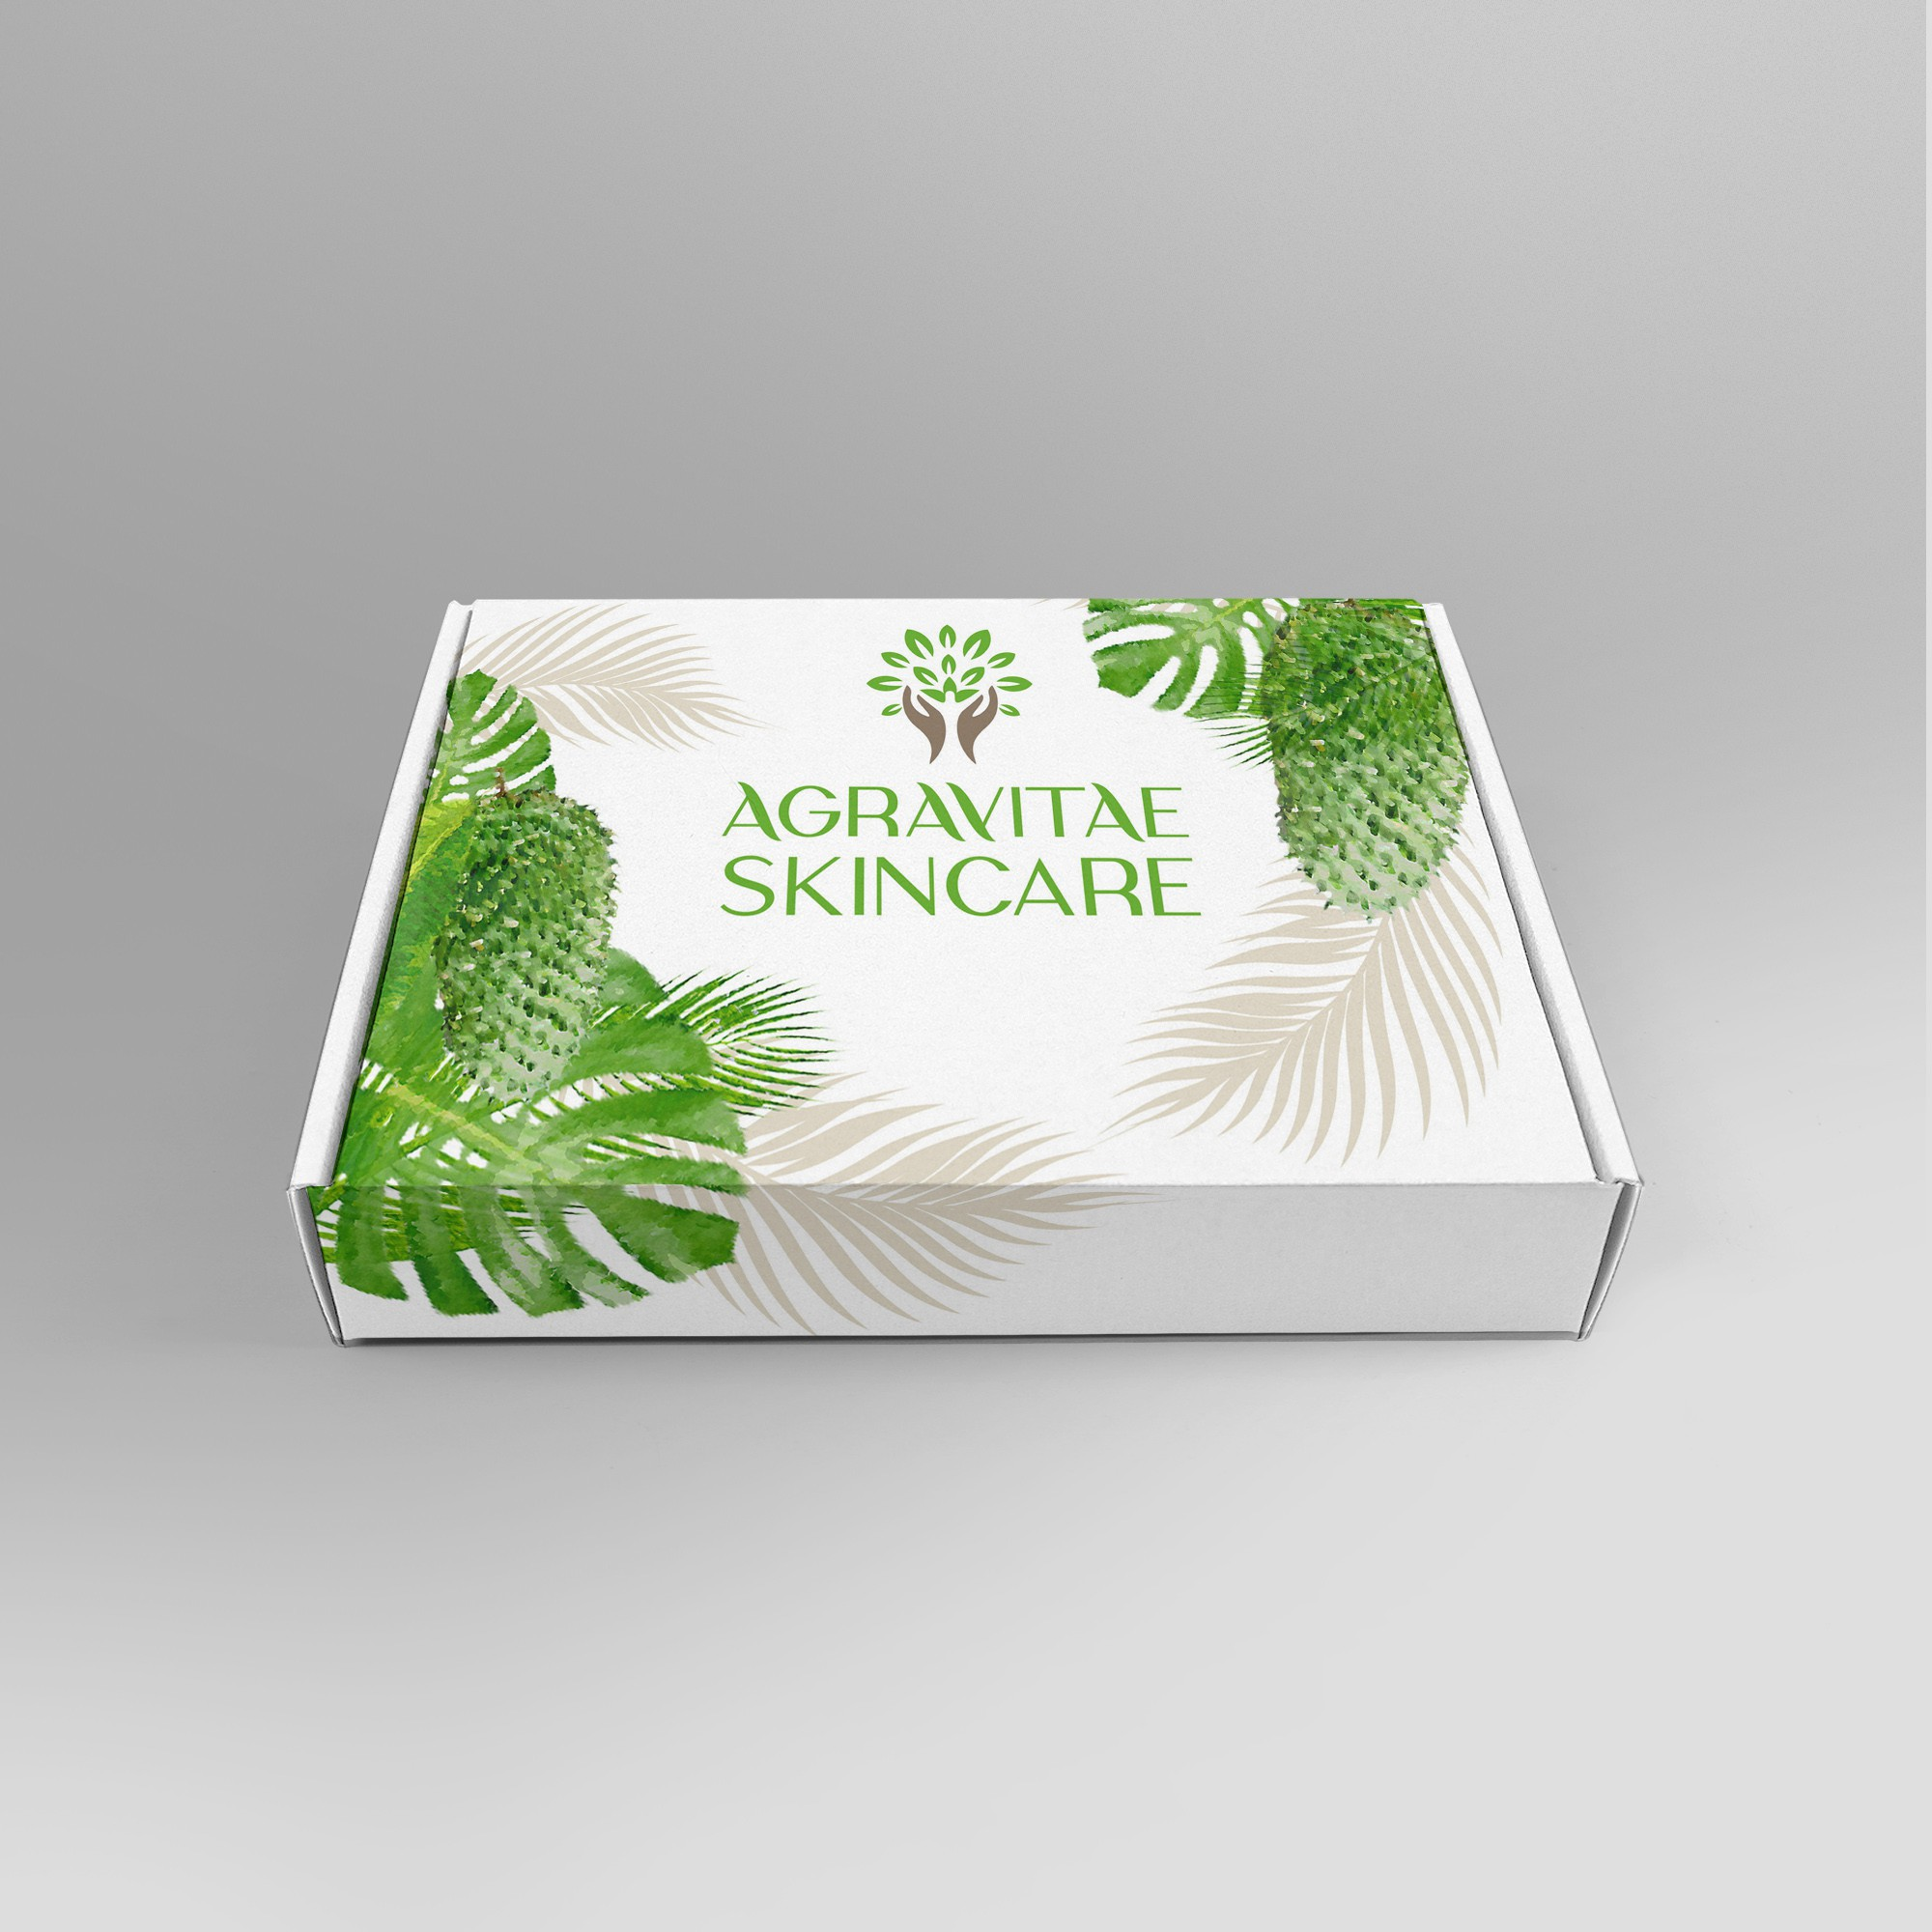 Agravitae Product Packaging